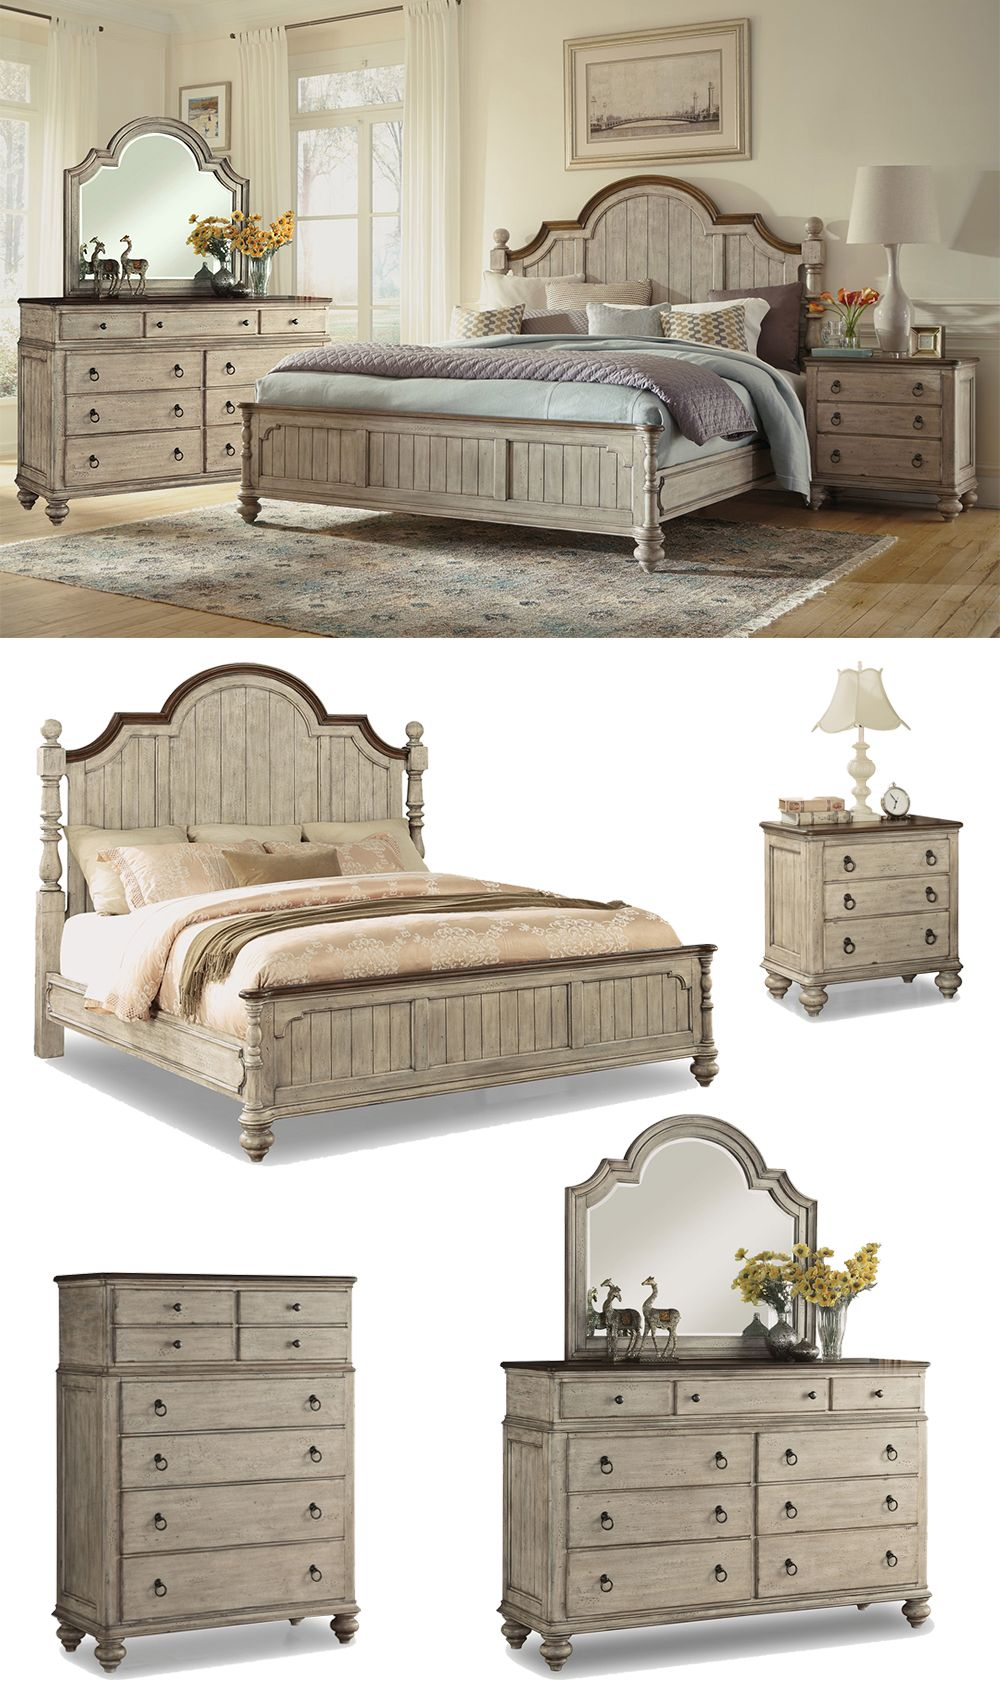 The Plymouth Bedroom Set boasts a shabby chic design with